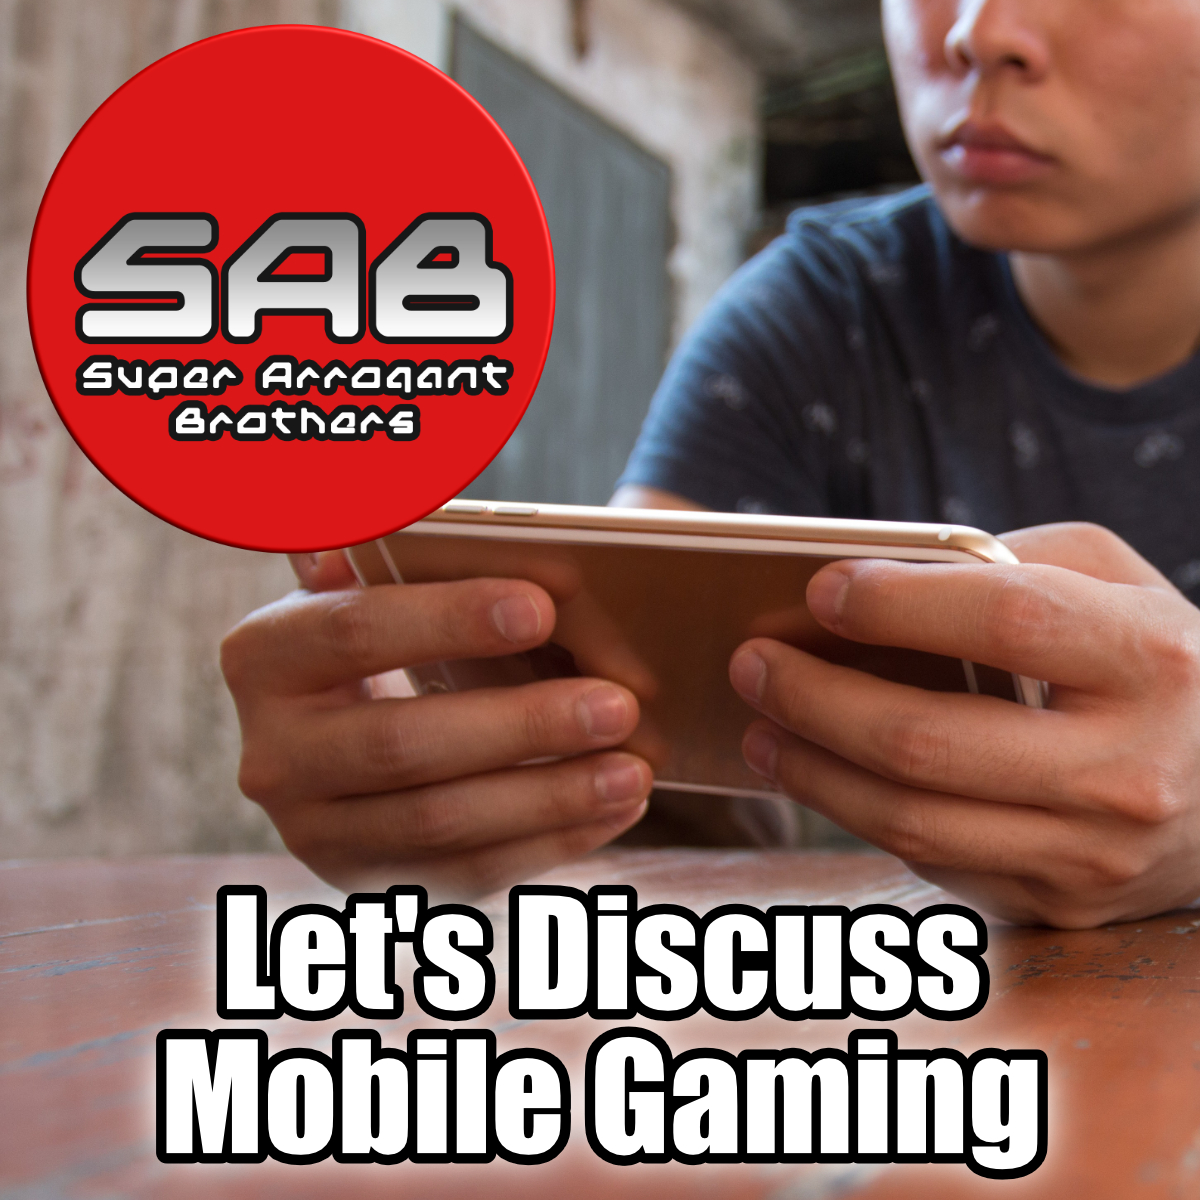 Super Arrogant Bros: Let's Discuss Mobile Gaming